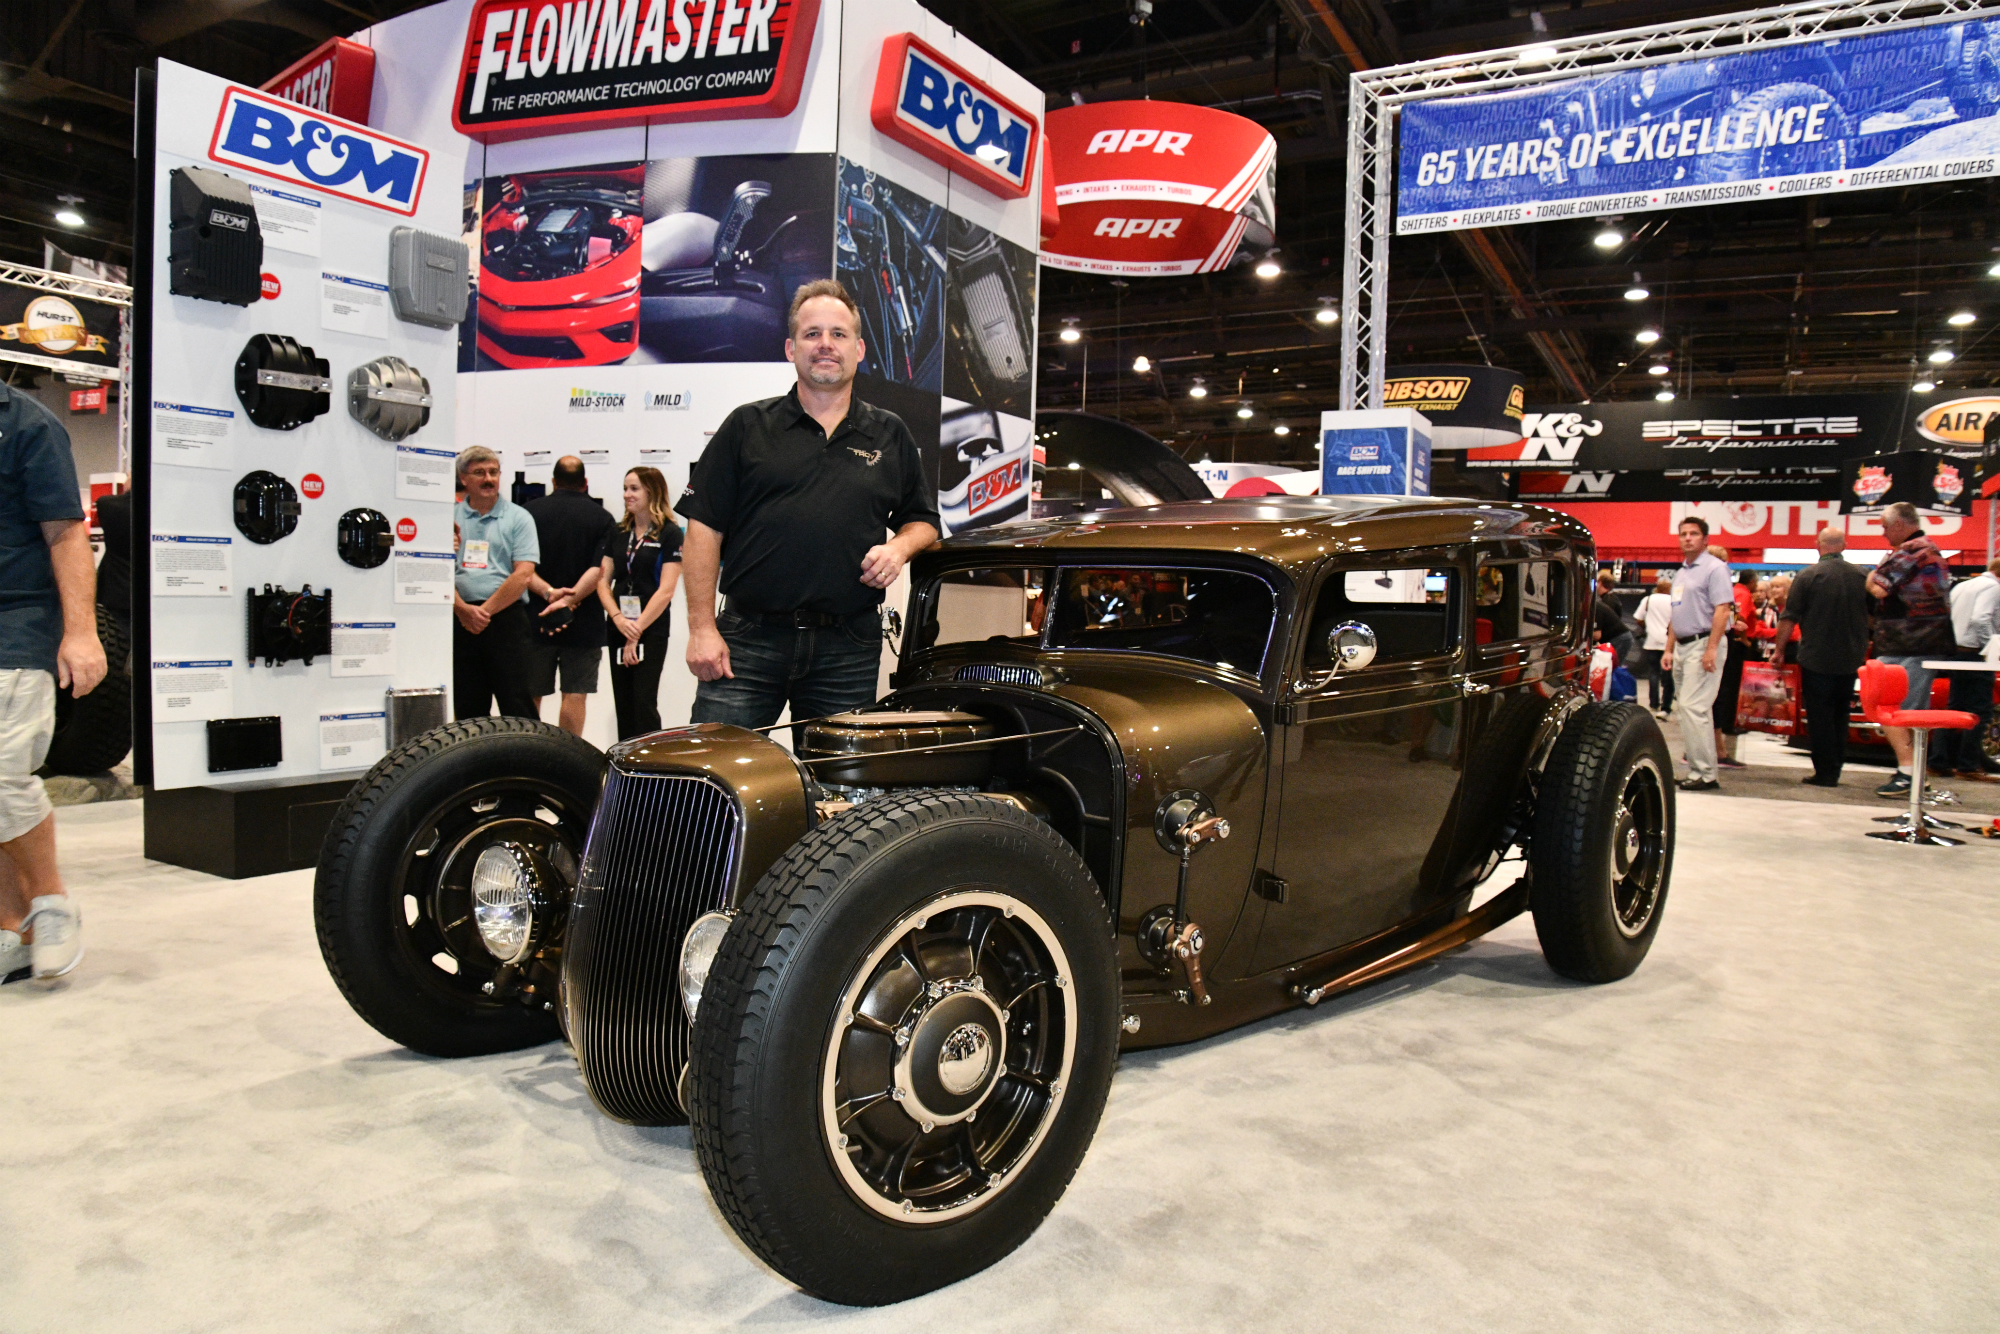 SEMA SHOW Battle Of The Builders - Good guys car show rules